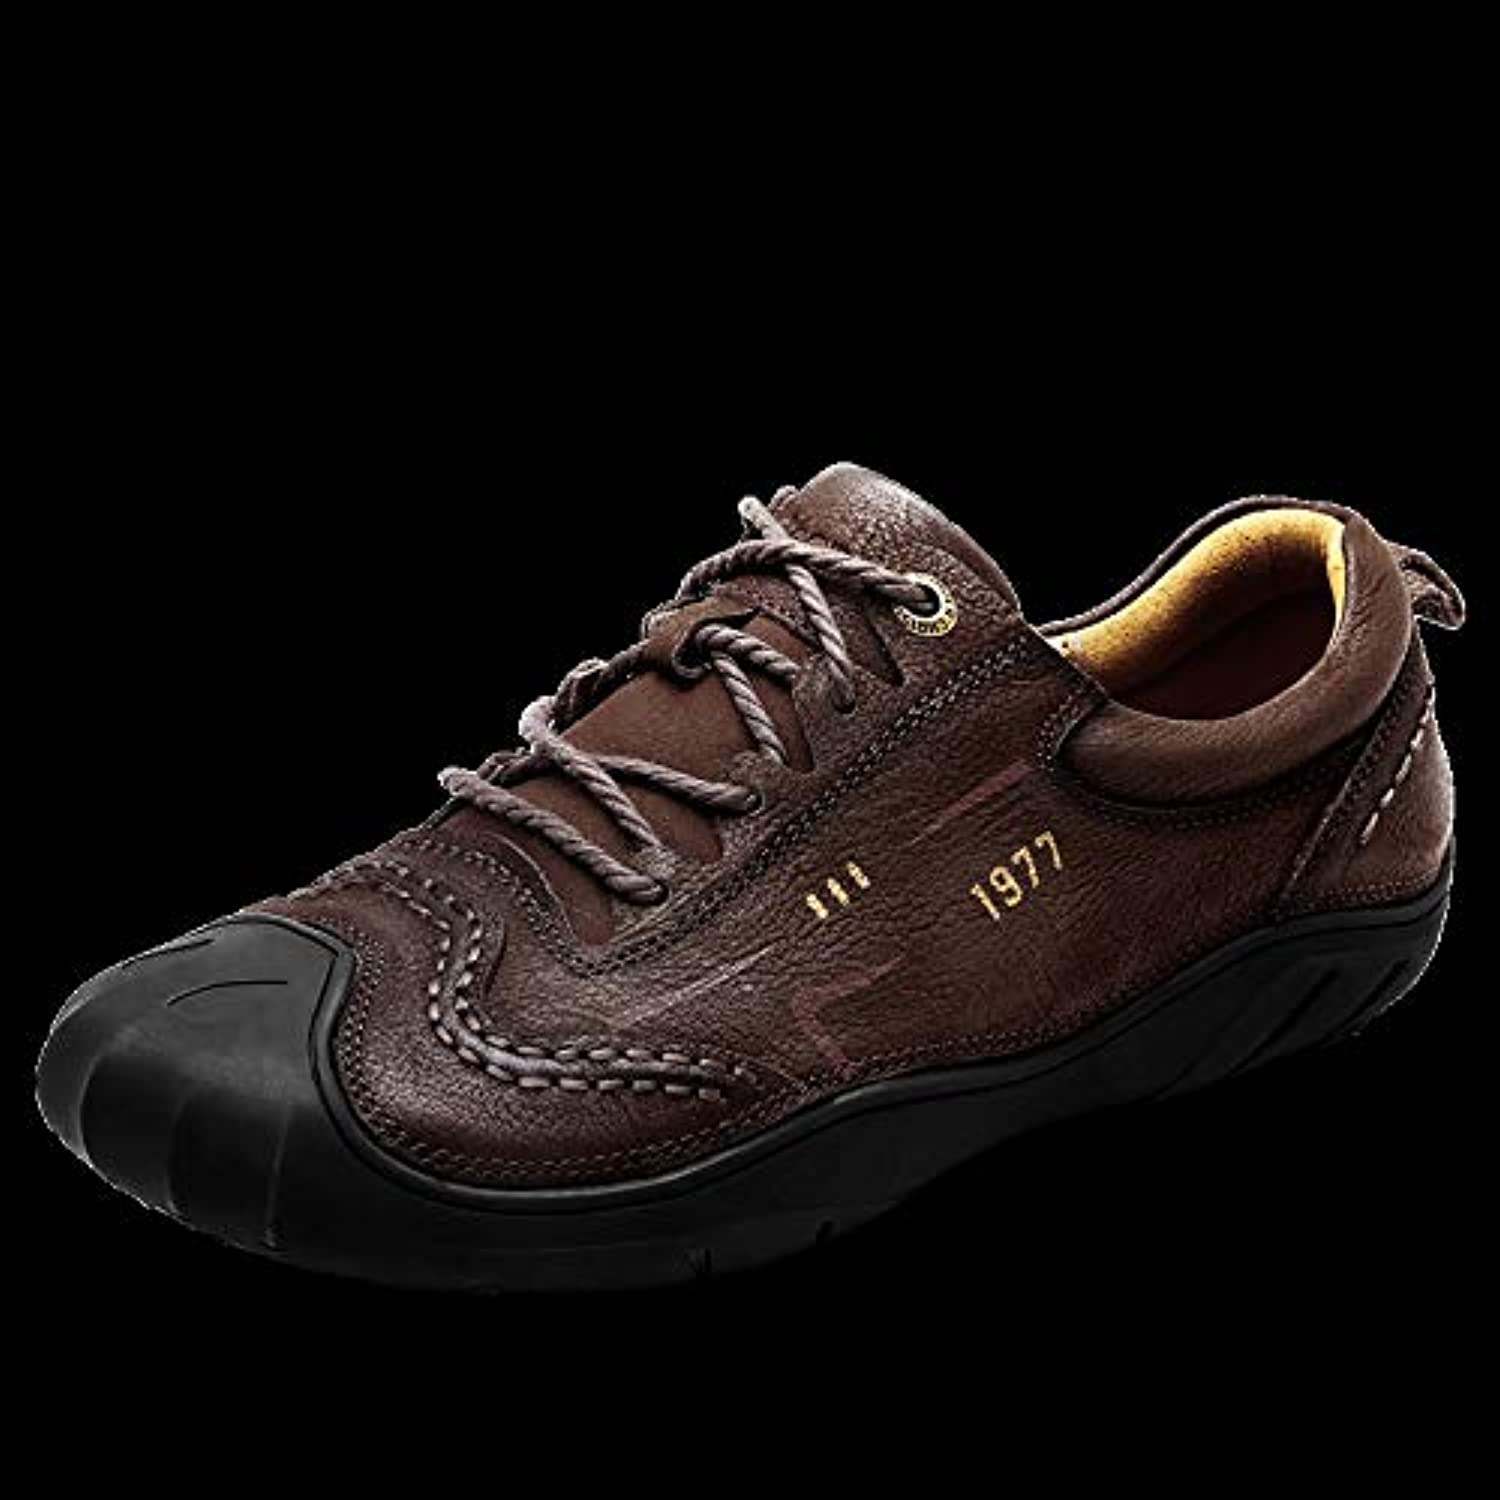 LOVDRAM Men'S shoes Men'S shoes Autumn And Winter Leather Breathable Men'S Outdoor Casual shoes Men'S Leather Handmade shoes